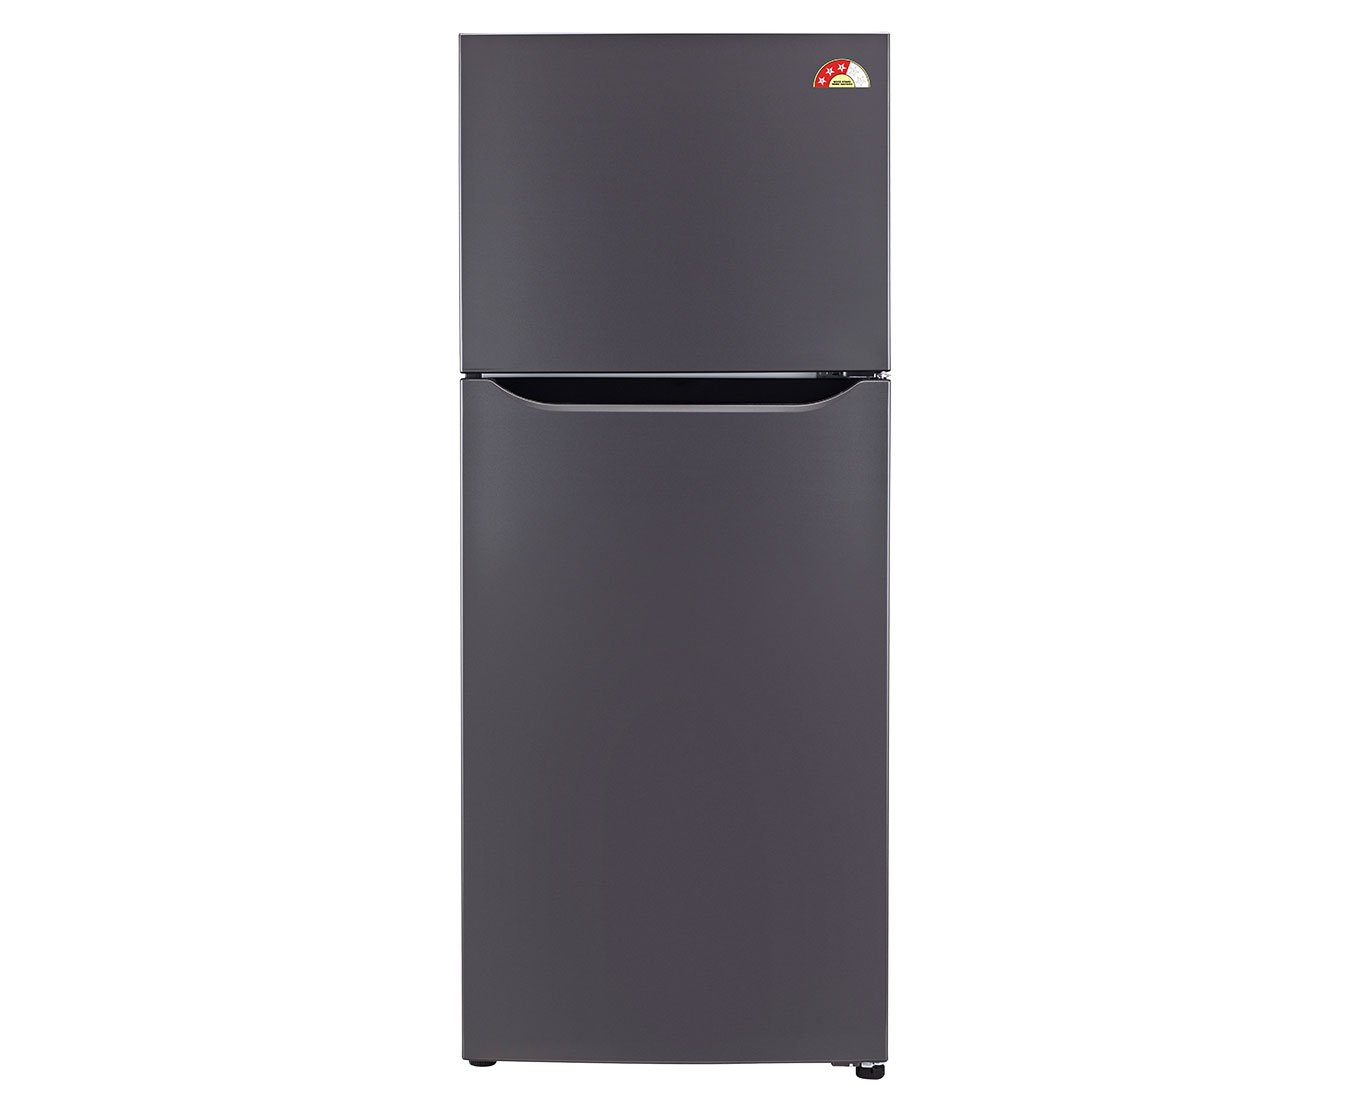 lg refrigerator on sale. lg 260 l 3 star frost-free double door refrigerator (gl-q292stnm, titanium): amazon.in: home \u0026 kitchen lg on sale g